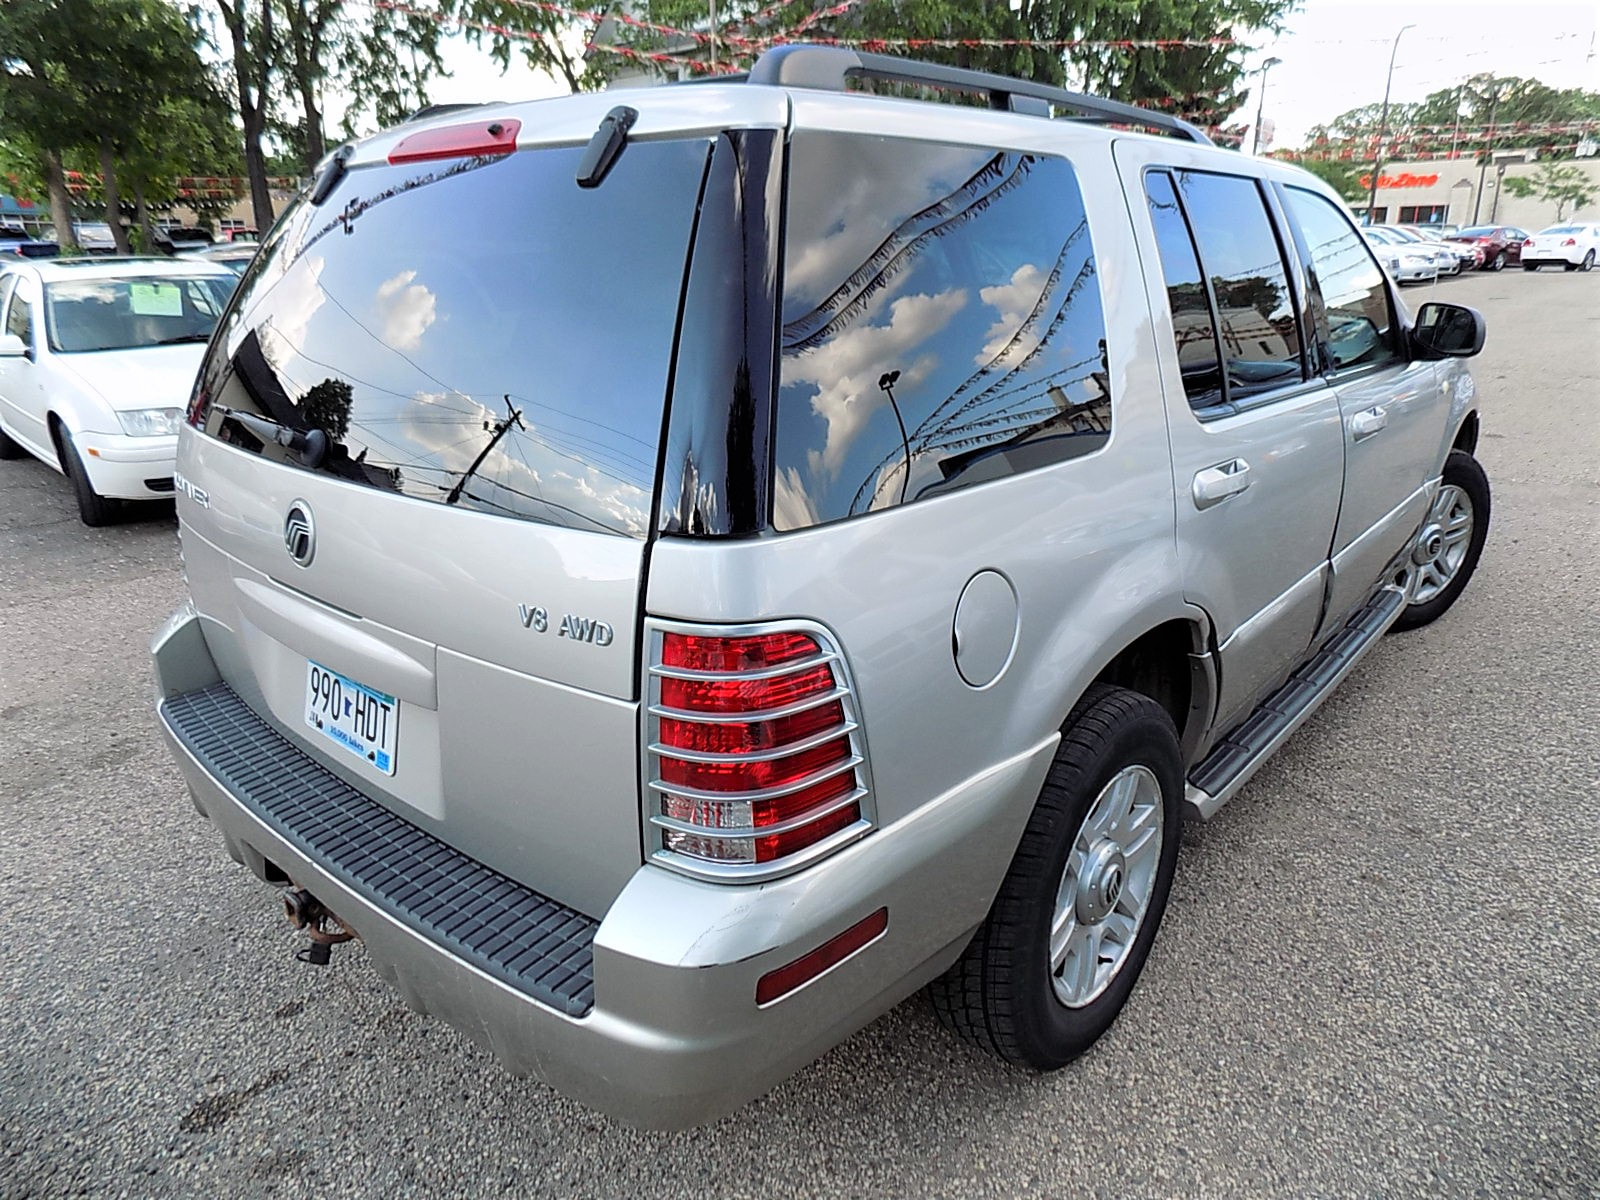 2003 Mercury Mountaineer Awd V8 6297